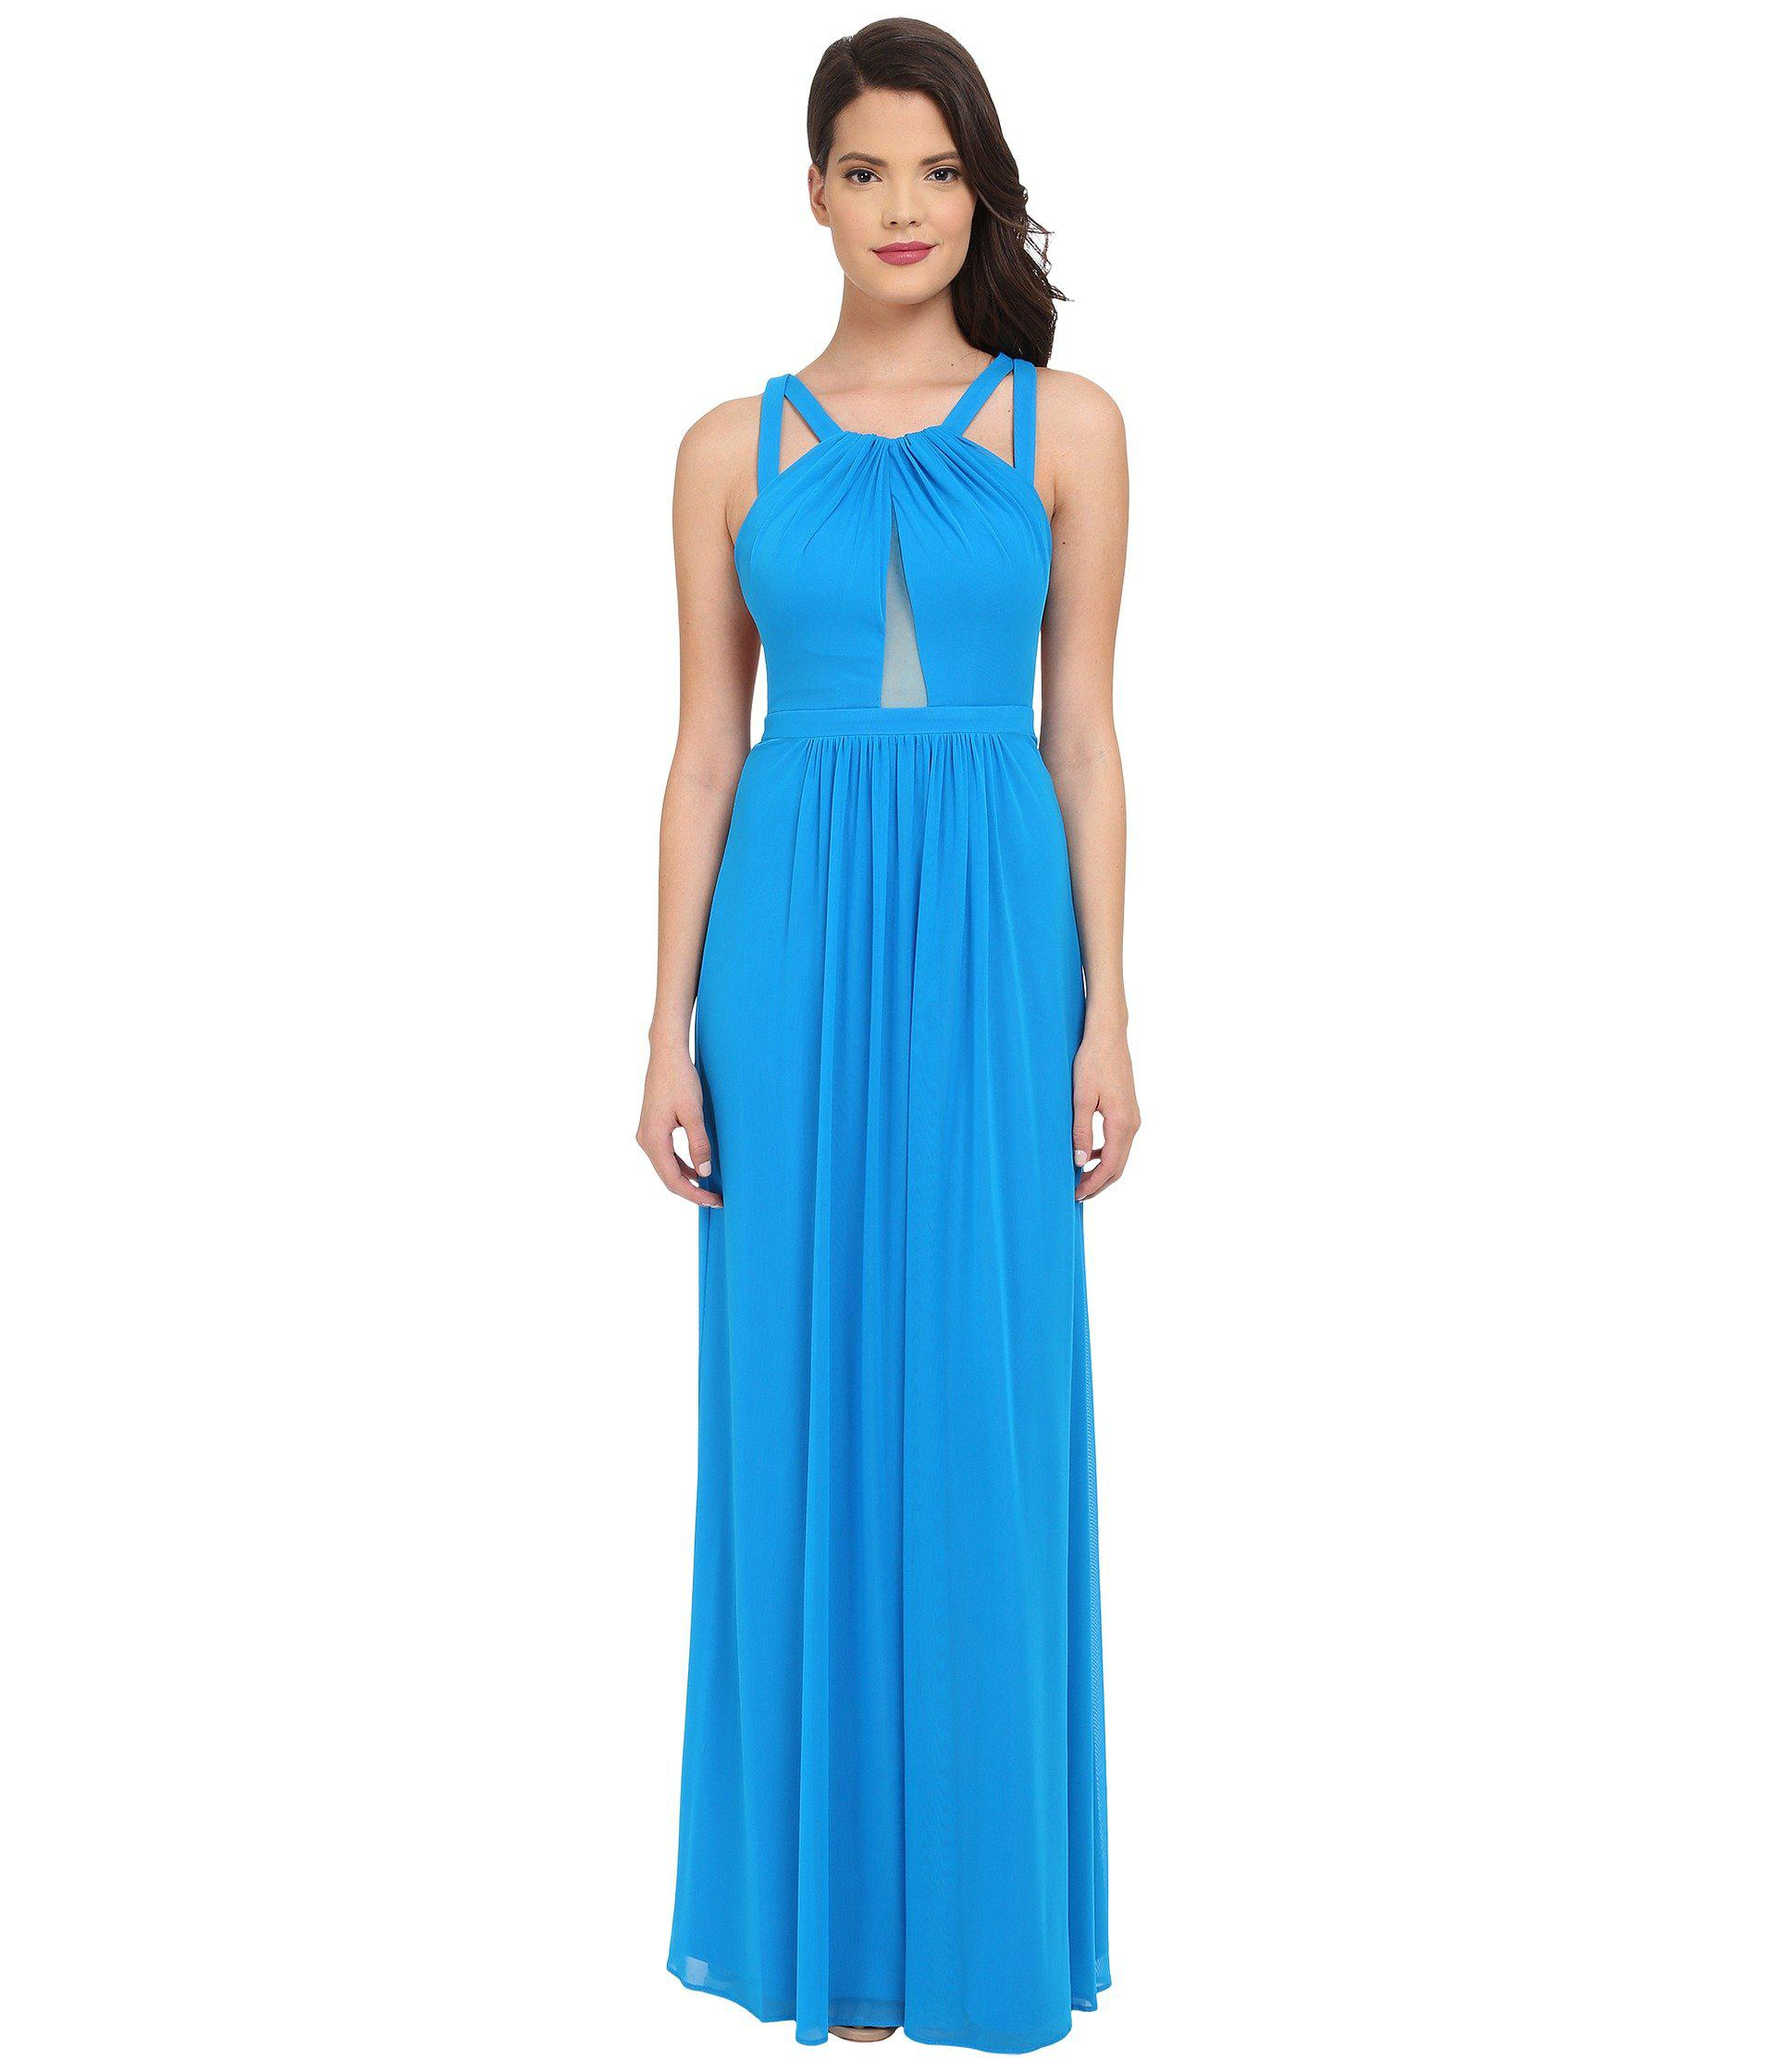 Lyst - Faviana Mesh Gown With Illusion Center Front 7741 in Blue ...